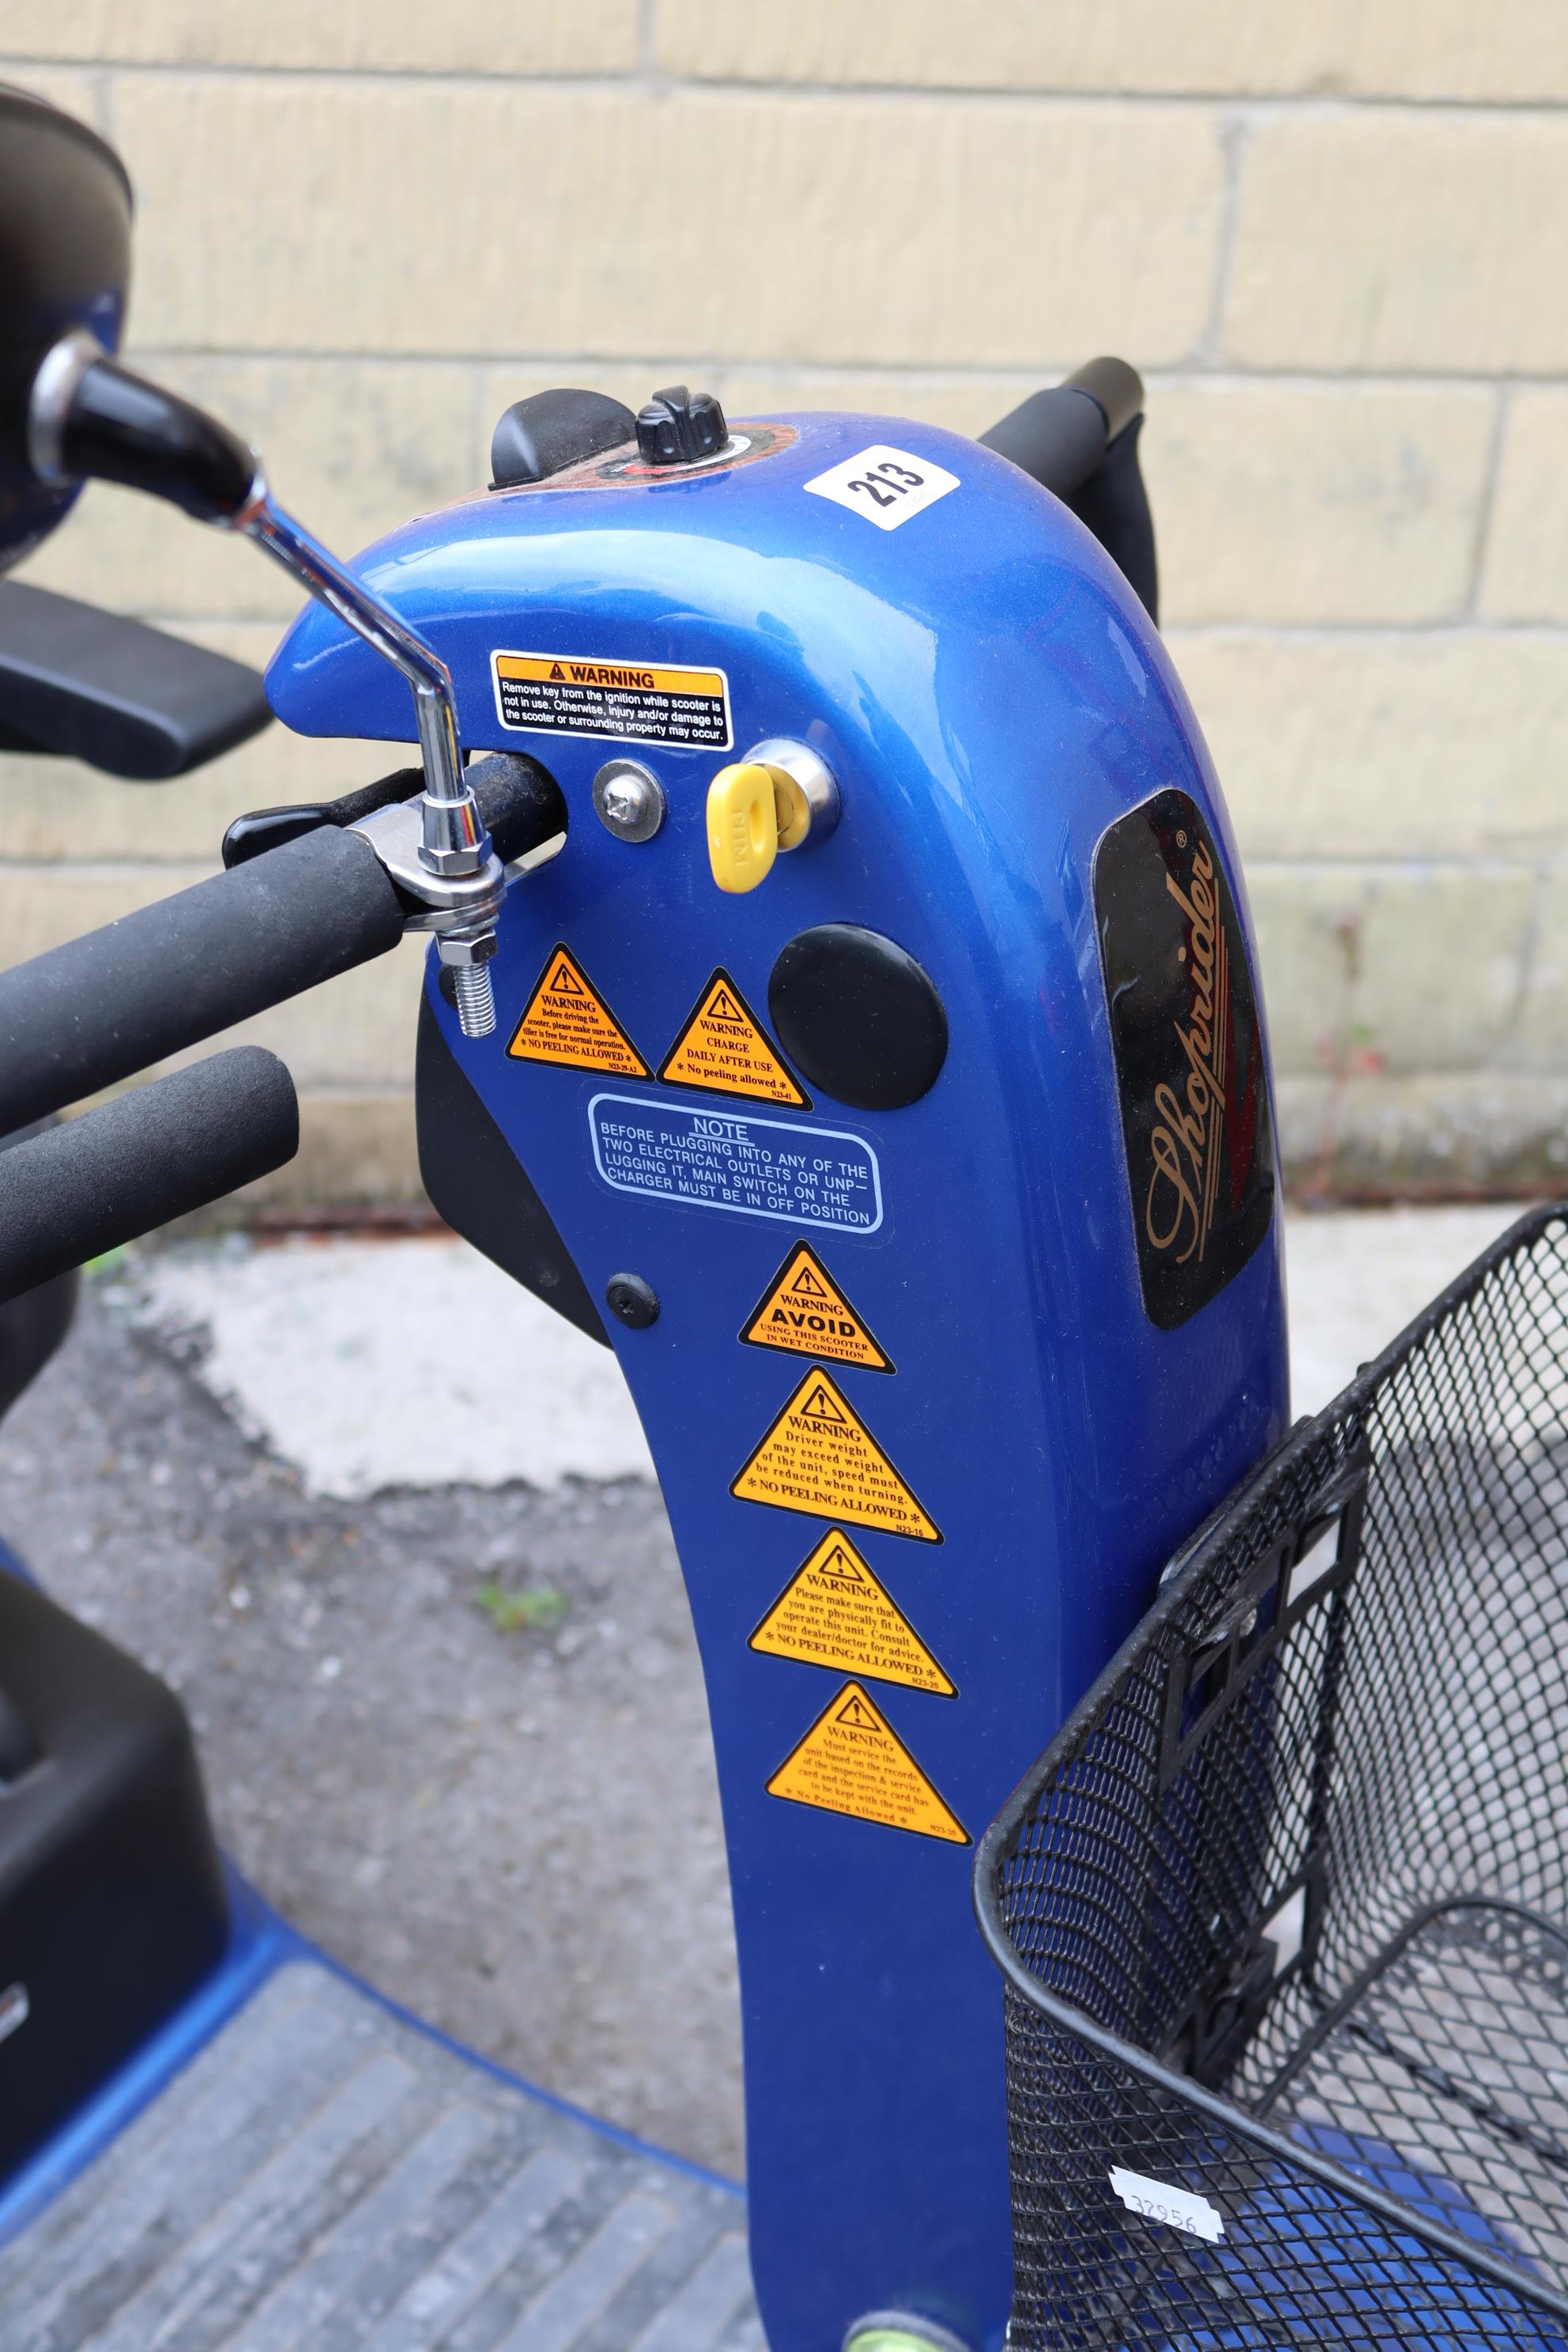 A Shoprider mobility scooter with battery, charger, & key. - Image 2 of 8